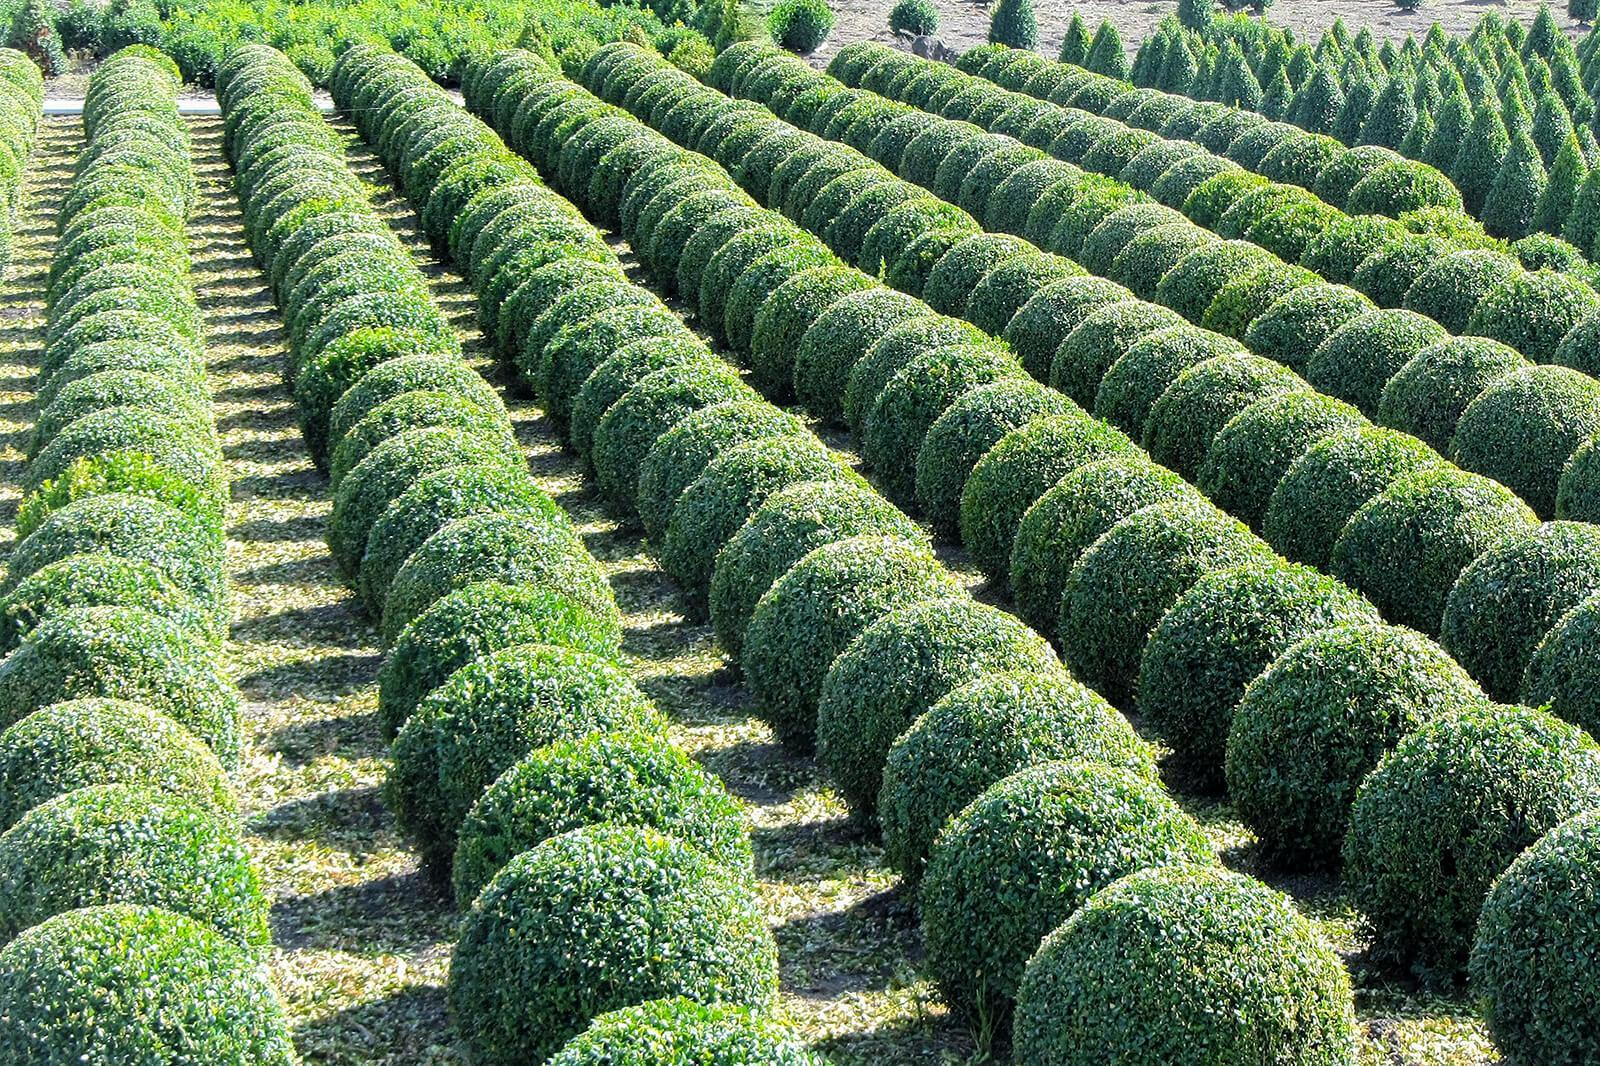 United States amends entry requirements for imports of boxwood, euonymus and holly from Canada